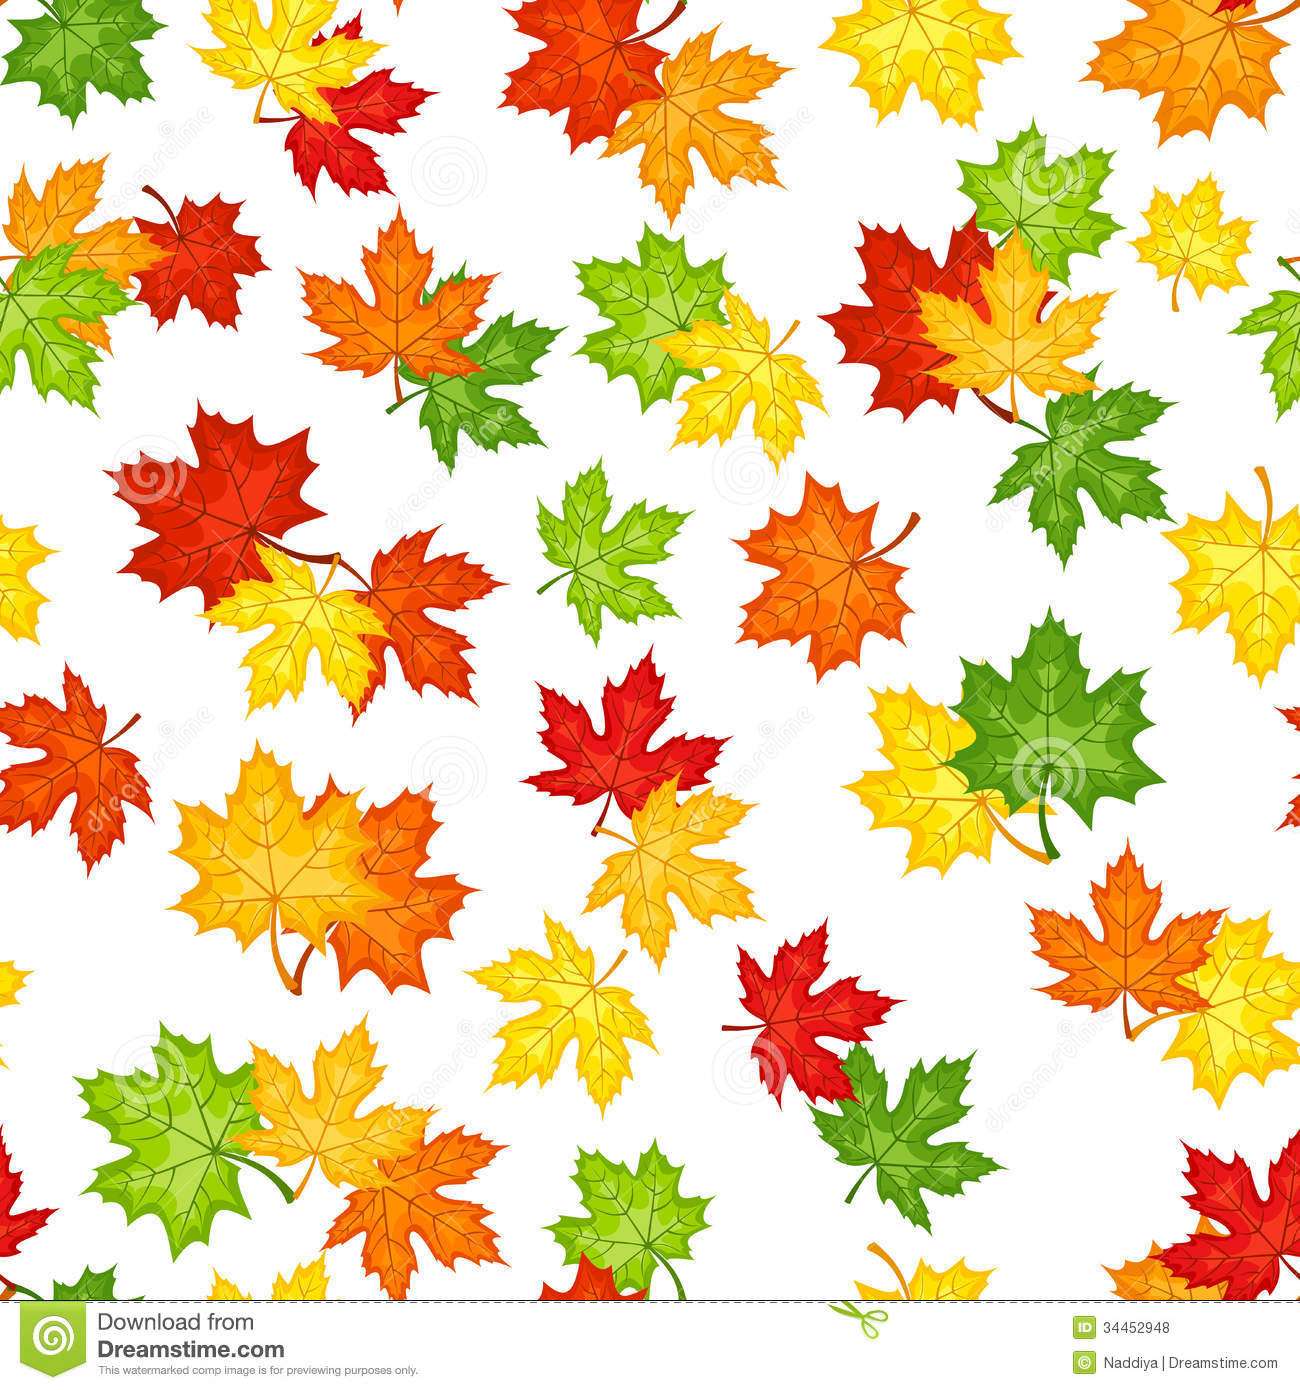 Fall Of The Leafe Wallpaper Seamless Pattern With Autumn Maple Leaves Royalty Free